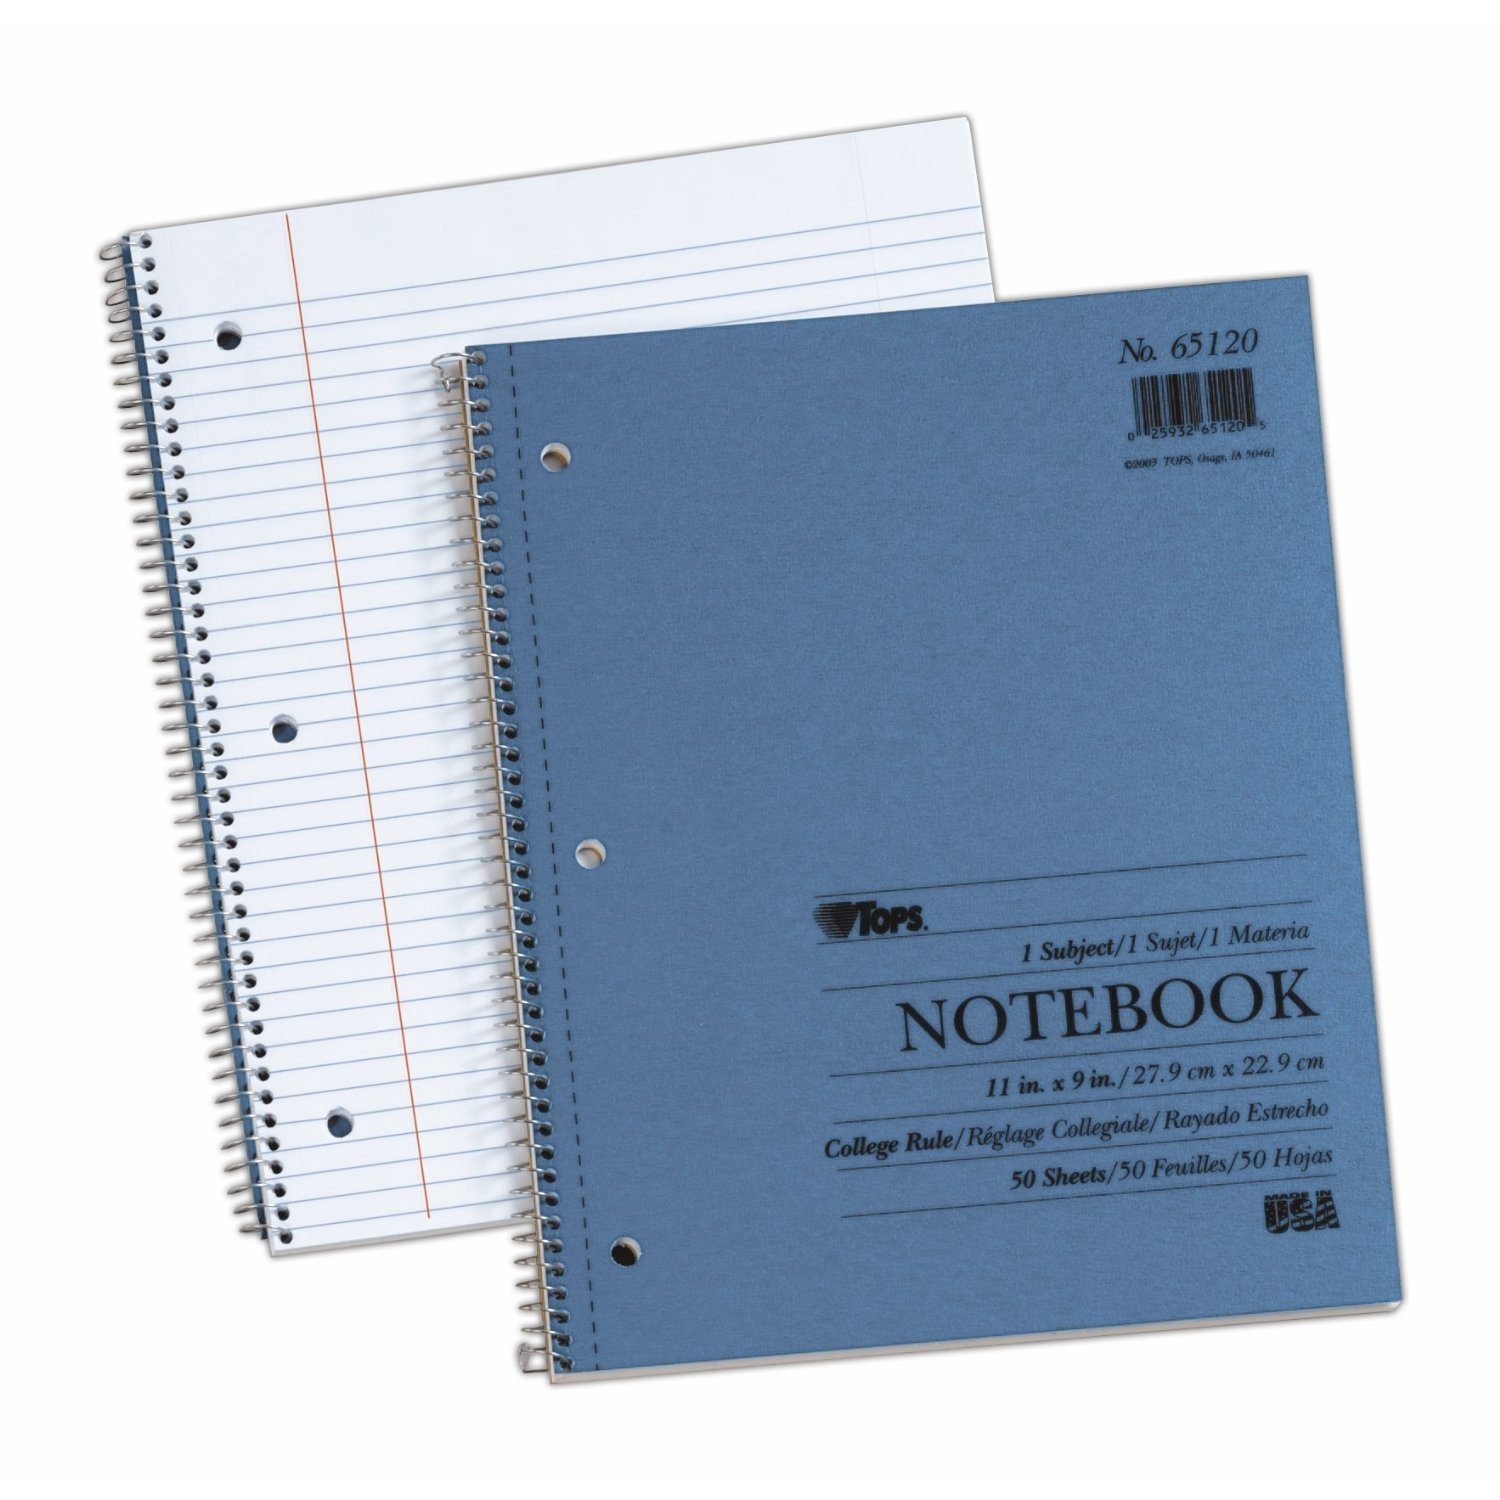 TOPS Kraft Cover Notebooks, 9 x 11 Inches, 3-Hole Punched, College Rule, 50 Sheets, Blue Covers, Box of 24 (65120)